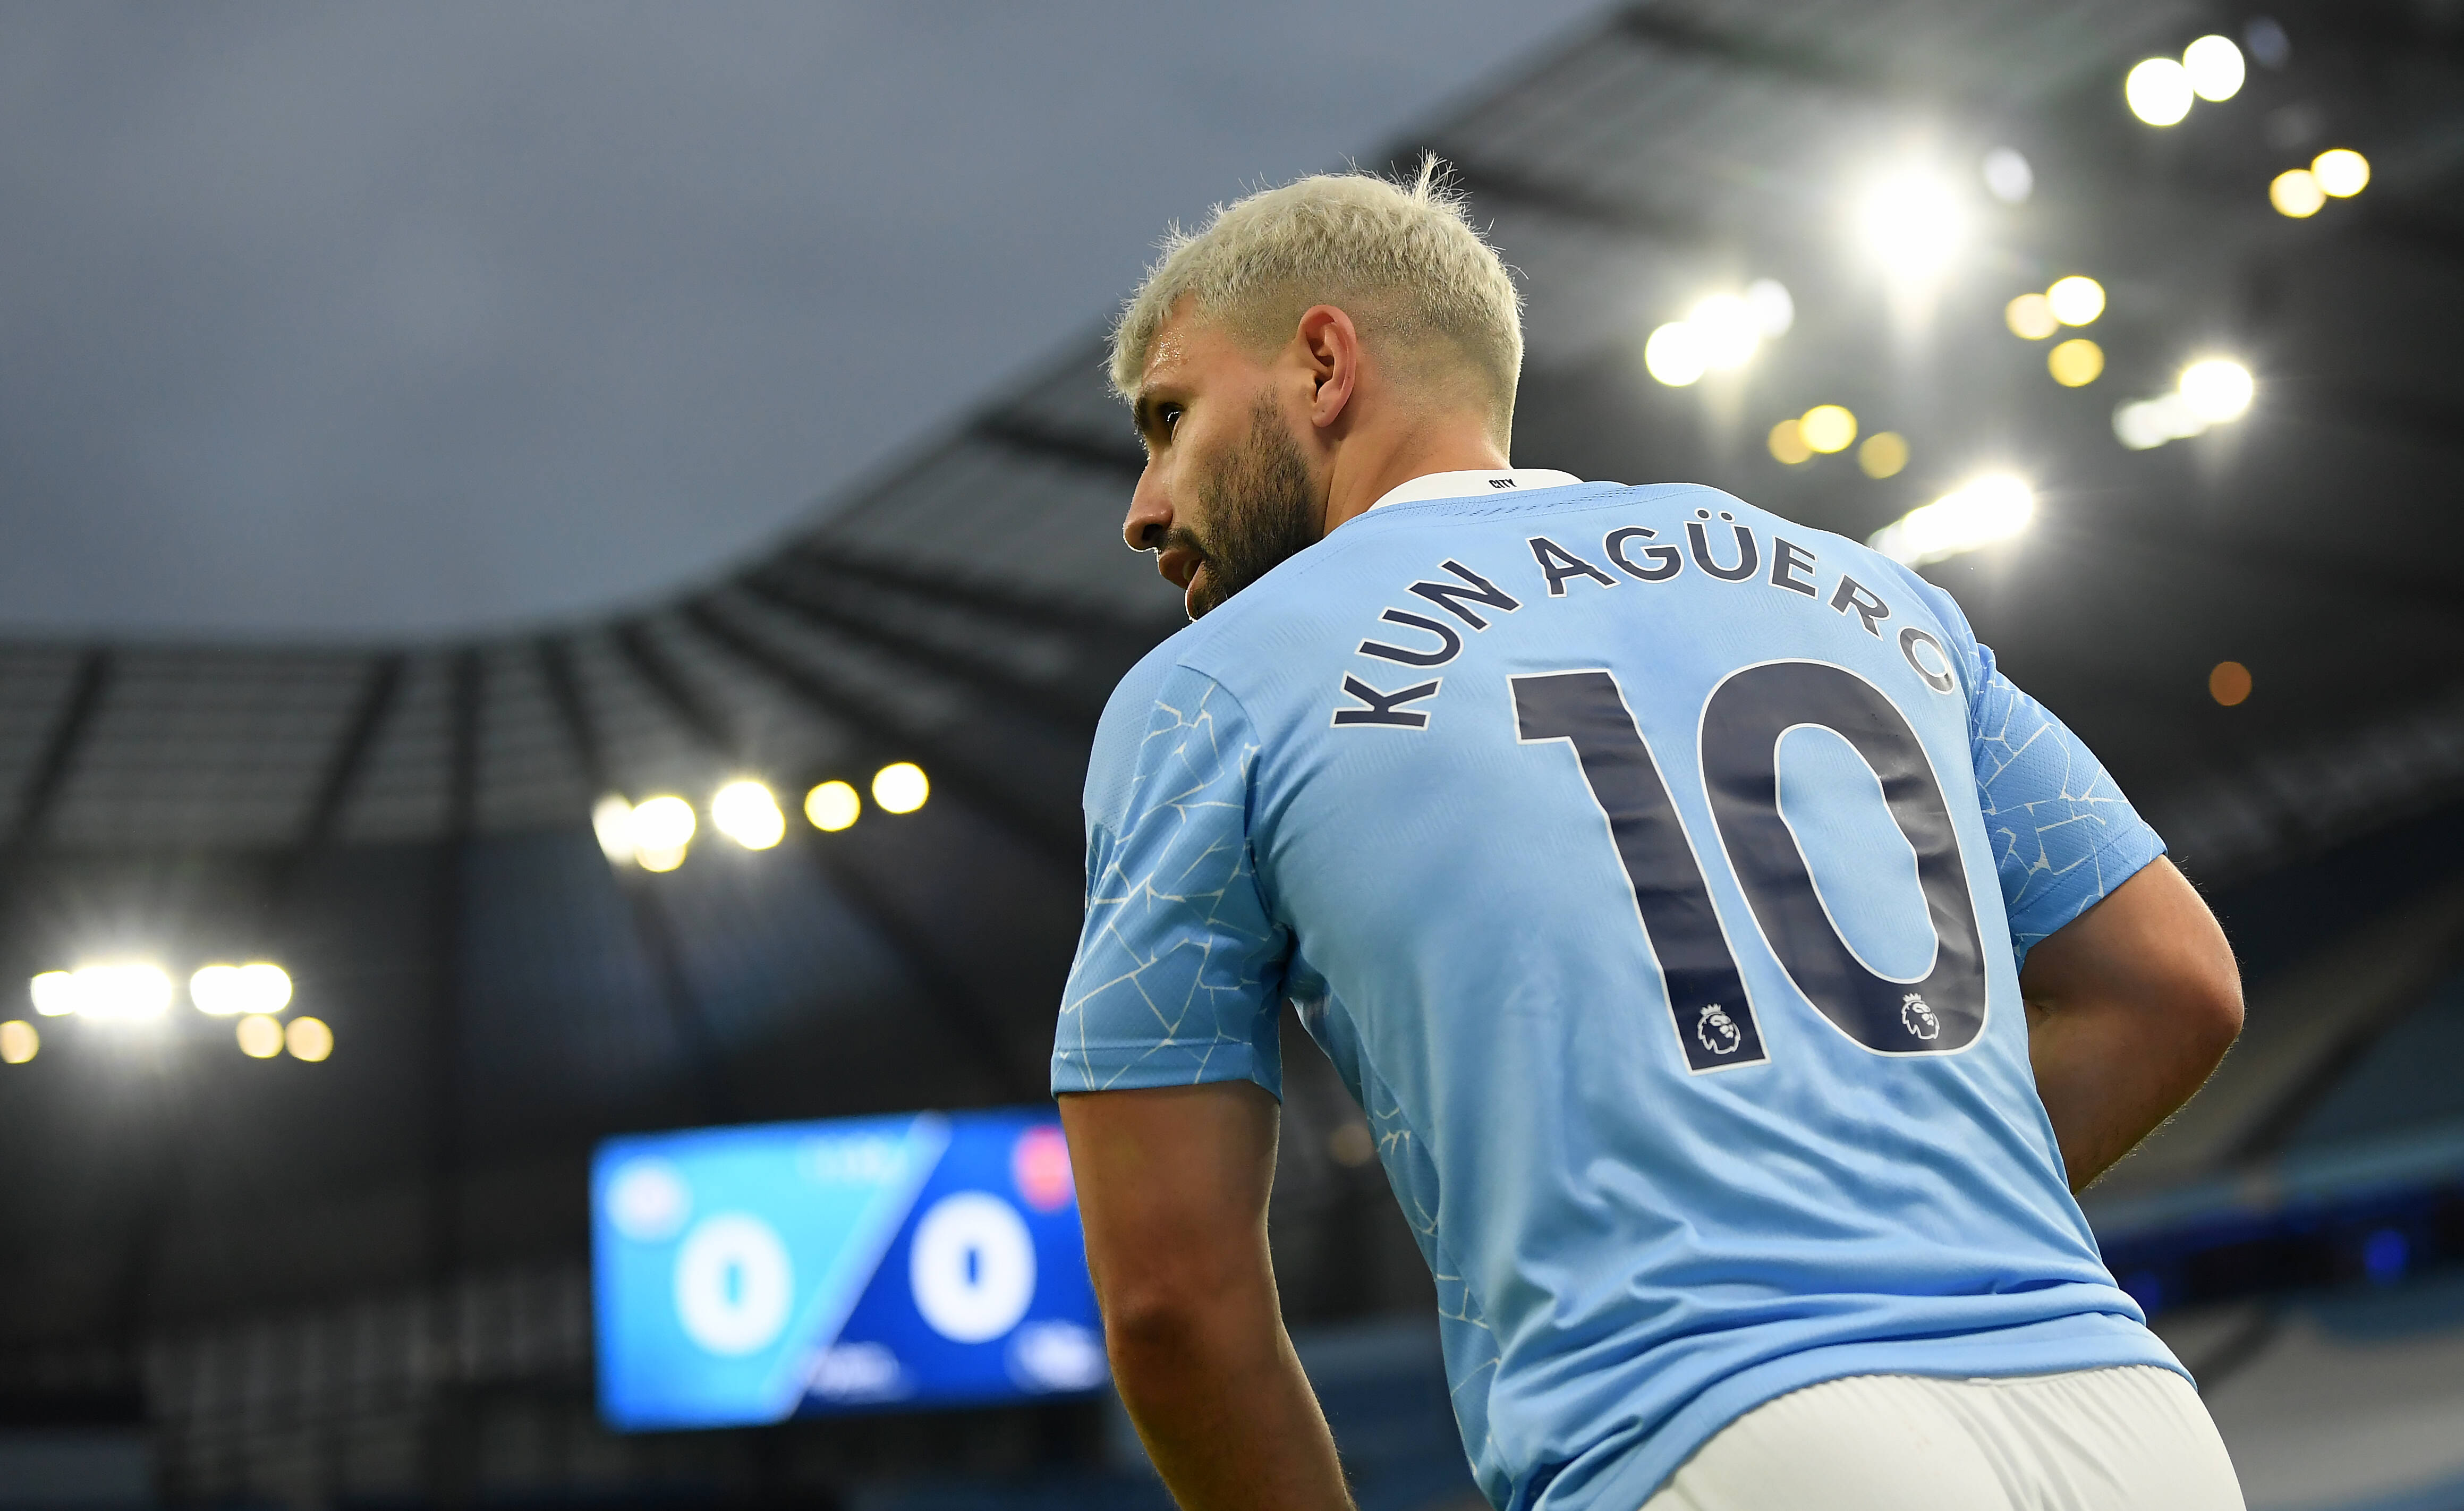 PSG Mercato: French Media Outlet Claims Sergio Agüero Has Received an Offer From Paris SG - PSG Talk